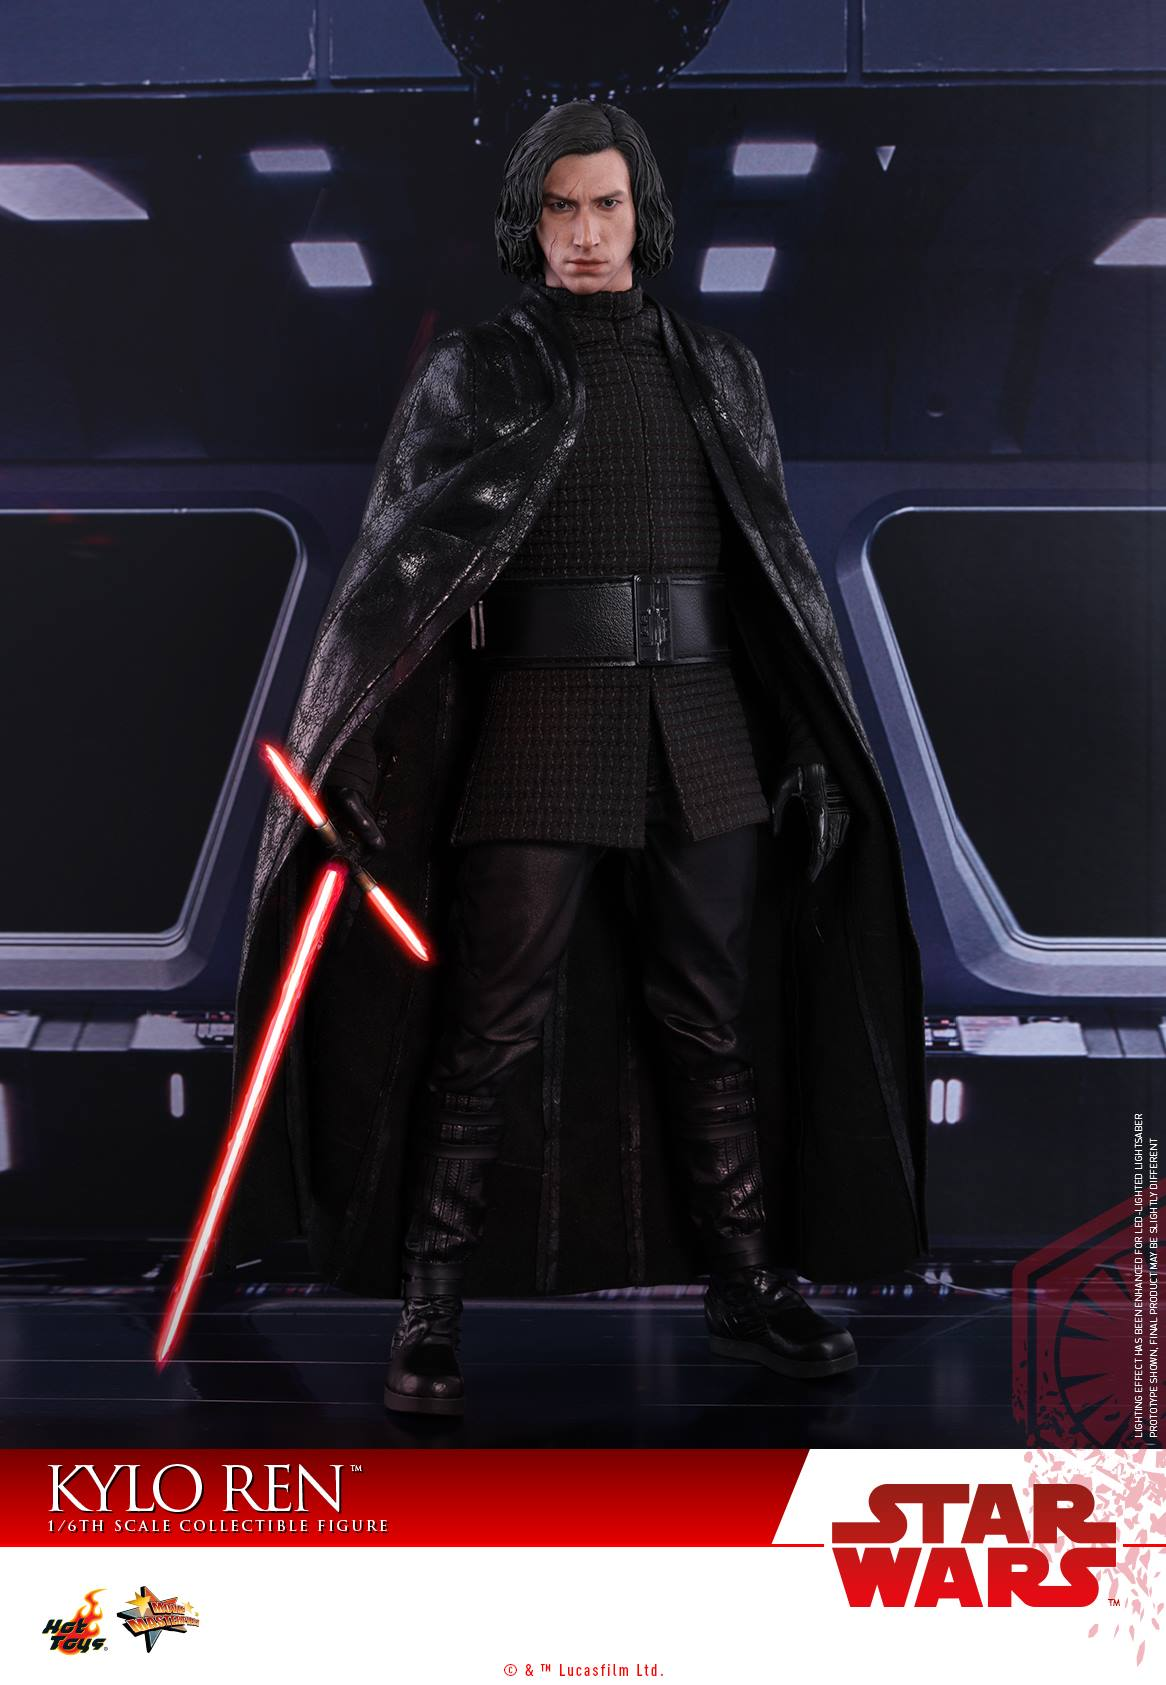 Hot Toys Star Wars TLJ Kylo Ren MMS438 Black Tunic loose 1//6th scale